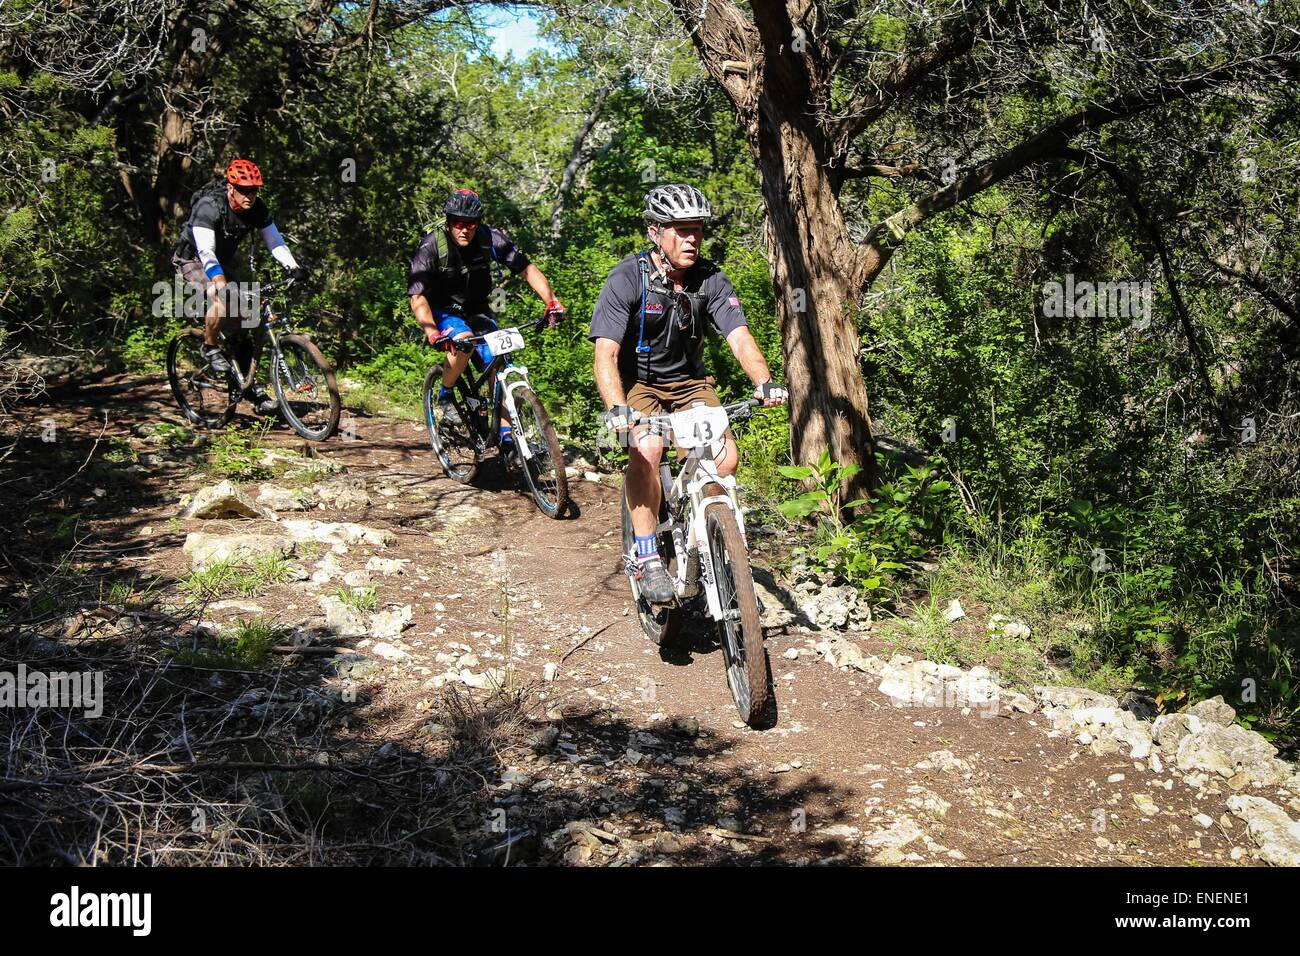 Former US President George W. Bush (right) leads military service members on the W100K mountain bike ride across - Stock Image